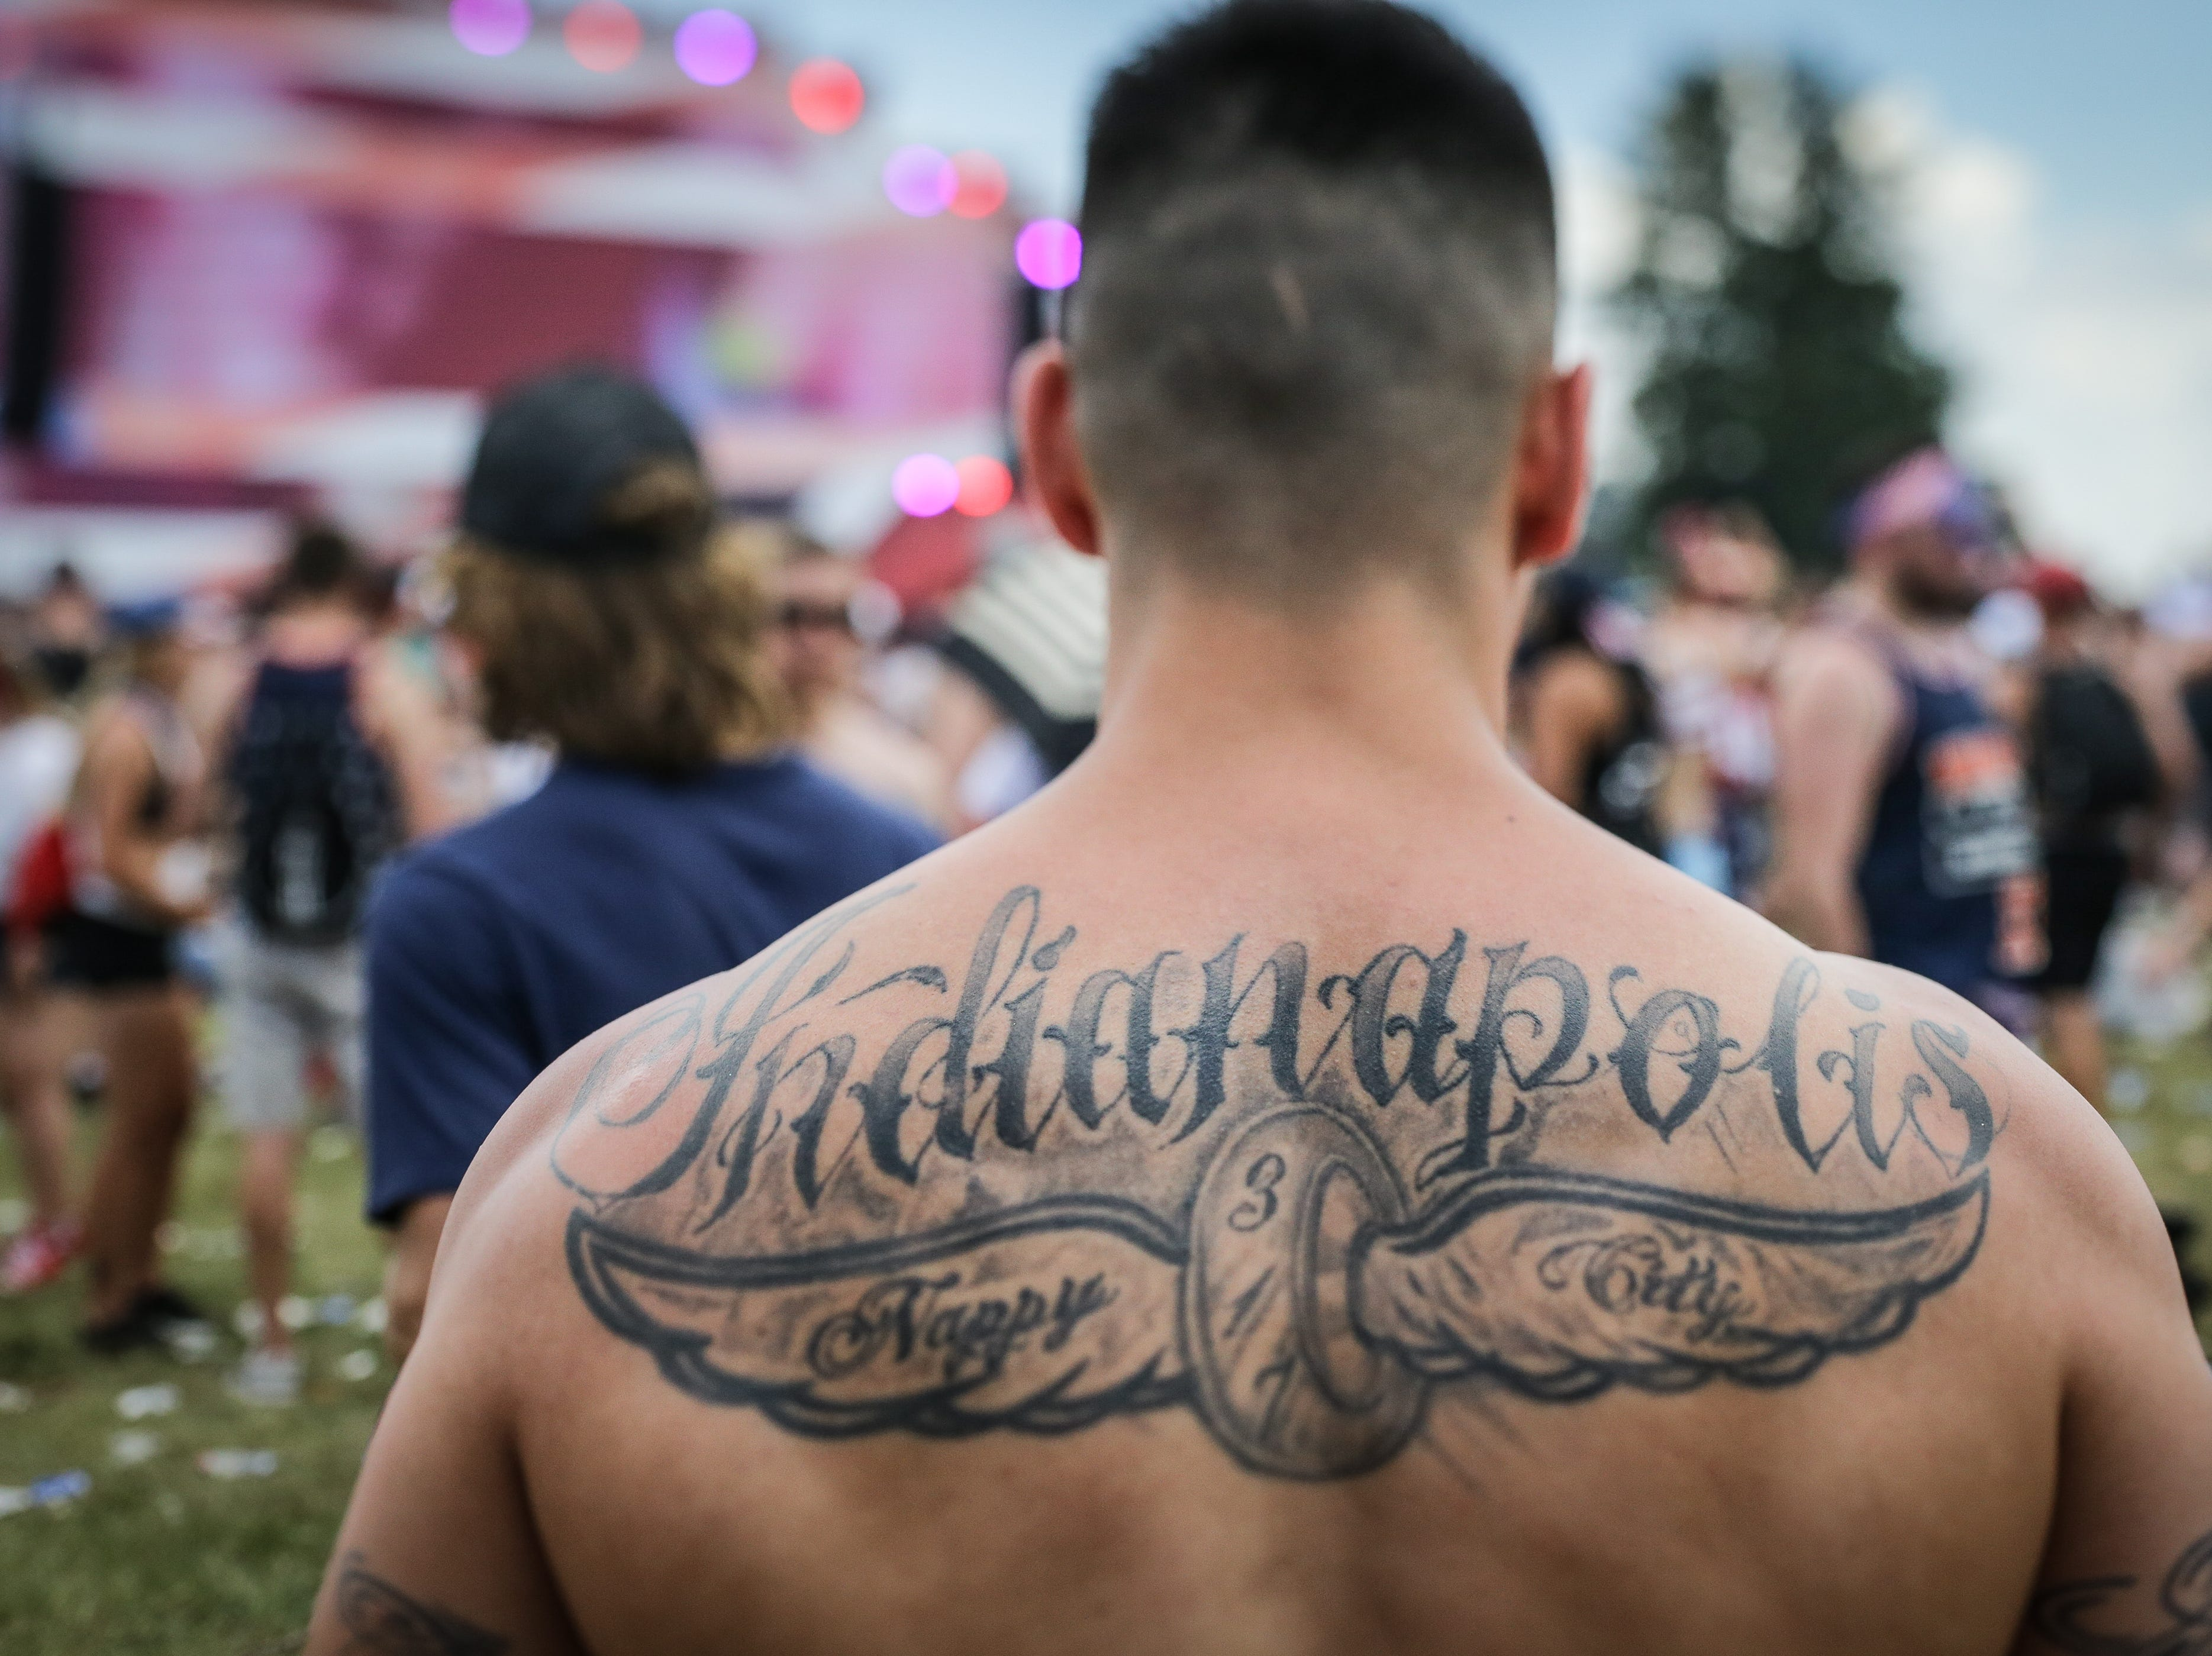 John Ellett shows off his 'Indianapolis Nappy City, 317' tattoo in the Snake Pit during the 102nd running of the Indy 500 at Indianapolis Motor Speedway on Sunday, May 27, 2018.